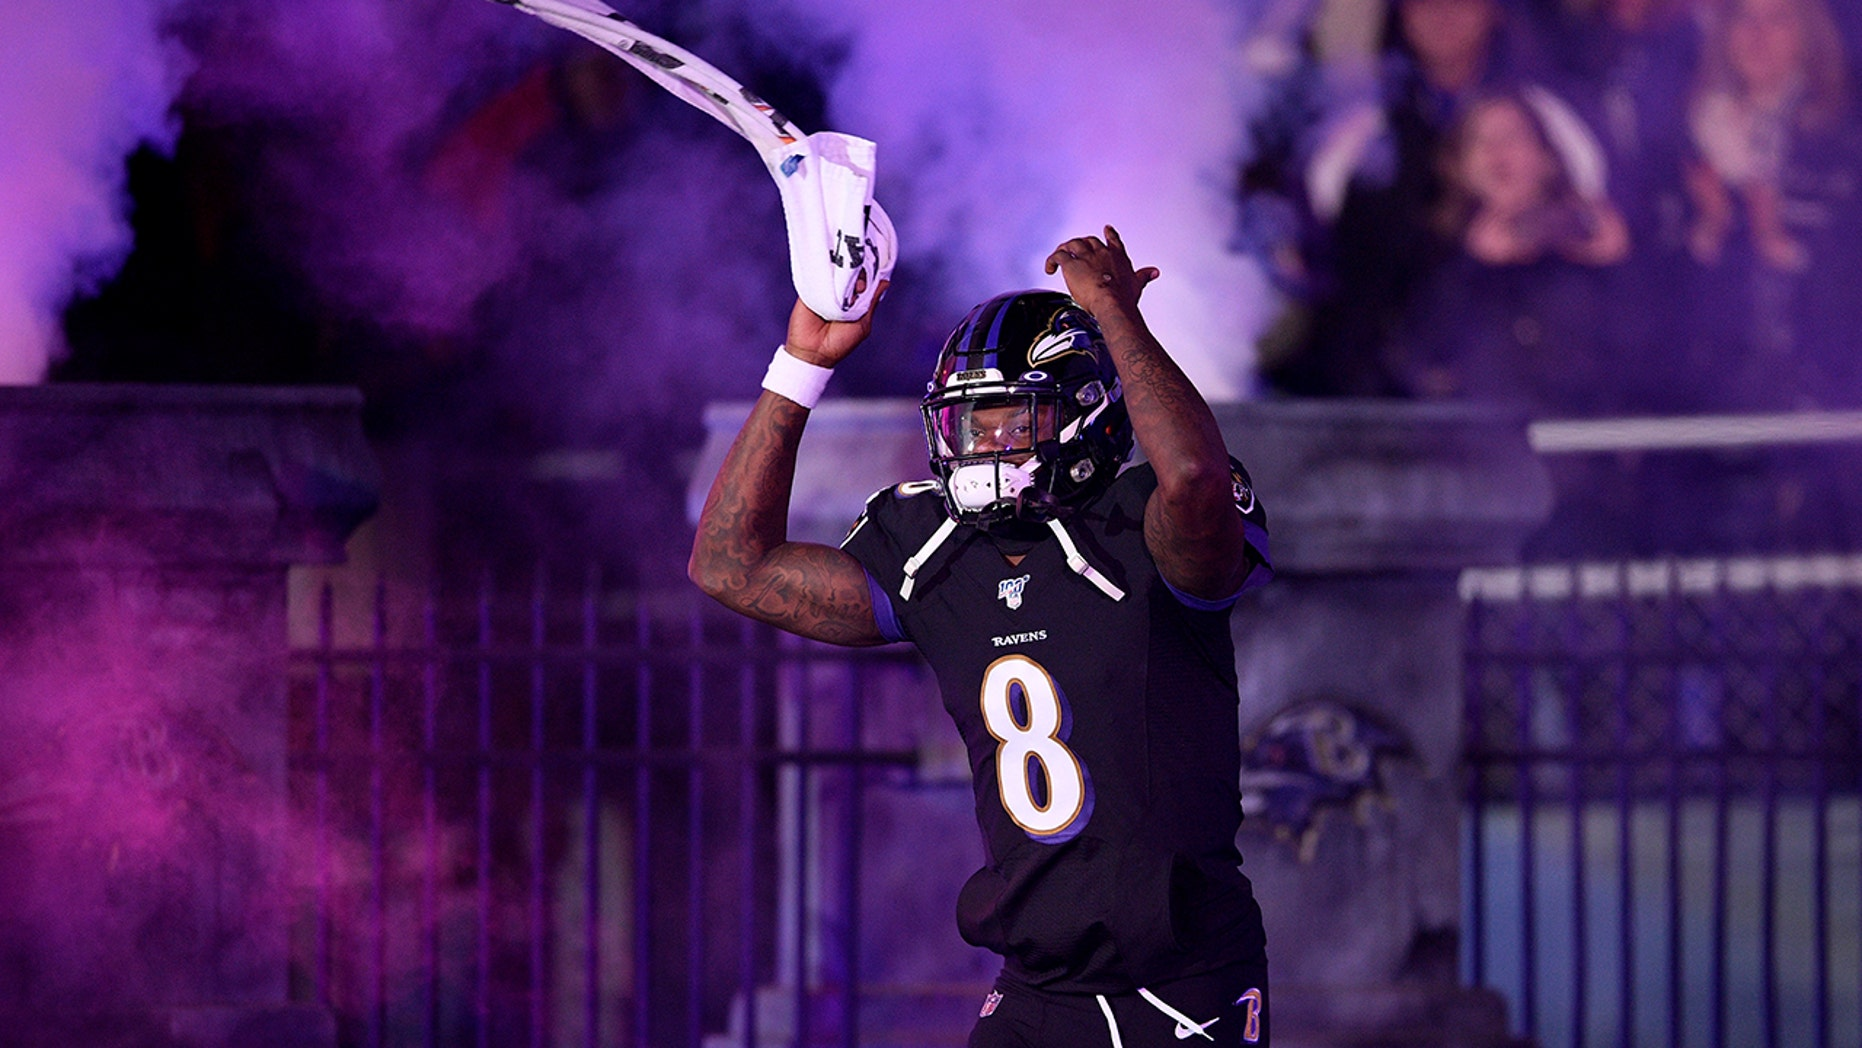 Westlake Legal Group Lamar-Jackson4 Baltimore Ravens tie Pro Bowl record with 12 selections fox-news/sports/nfl/tampa-bay-buccaneers fox-news/sports/nfl/seattle-seahawks fox-news/sports/nfl/san-francisco-49ers fox-news/sports/nfl/new-york-giants fox-news/sports/nfl/new-orleans-saints fox-news/sports/nfl/new-england-patriots fox-news/sports/nfl/miami-dolphins fox-news/sports/nfl/los-angeles-rams fox-news/sports/nfl/kansas-city-chiefs fox-news/sports/nfl/houston-texans fox-news/sports/nfl/green-bay-packers fox-news/sports/nfl/buffalo-bills fox-news/sports/nfl/baltimore-ravens fox-news/sports/nfl fox-news/person/patrick-mahomes fox-news/person/lamar-jackson fox-news/person/drew-brees fox-news/person/deshaun-watson fox-news/person/aaron-rodgers fnc/sports fnc Associated Press article 00ca50ee-8942-5a98-be73-4784097c2eee